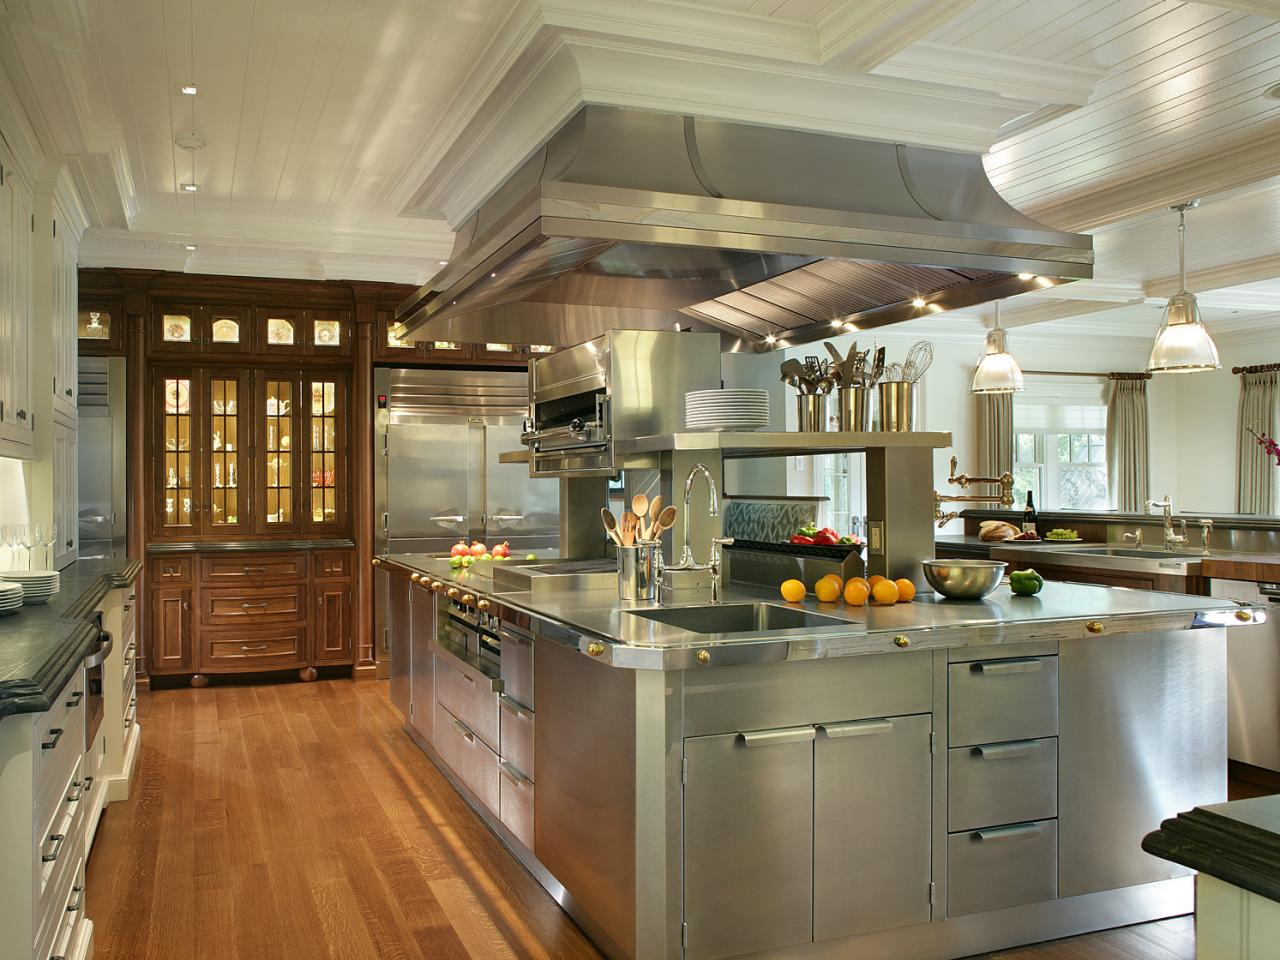 Stainless steel kitchen cabinets hgtv pictures ideas hgtv for Kitchen setting pictures